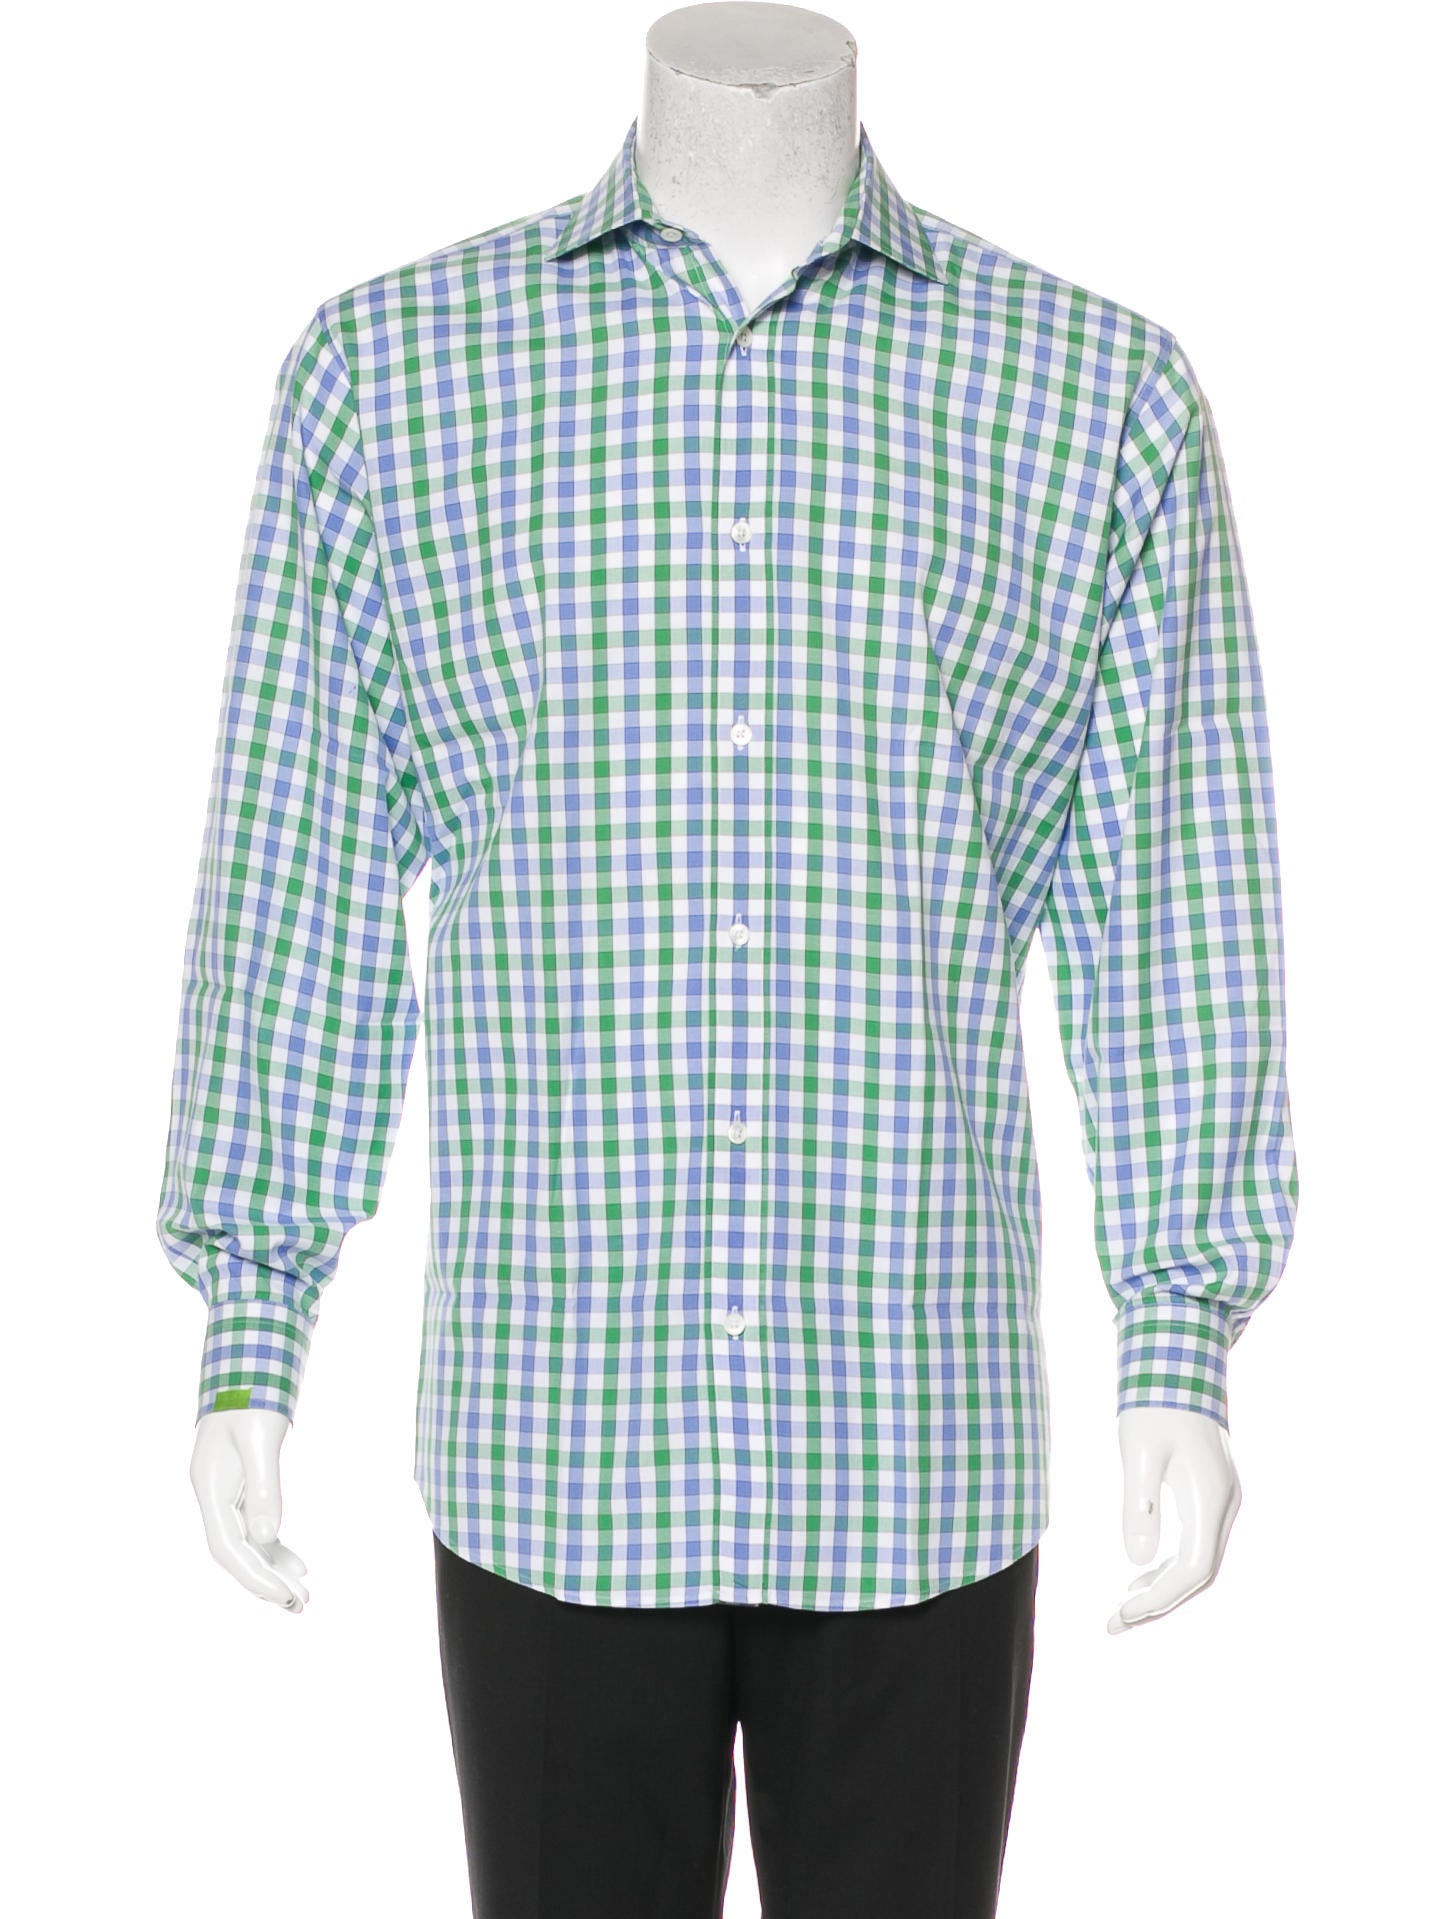 Herm s gingham dress shirt clothing her114209 the for Mens green gingham dress shirt